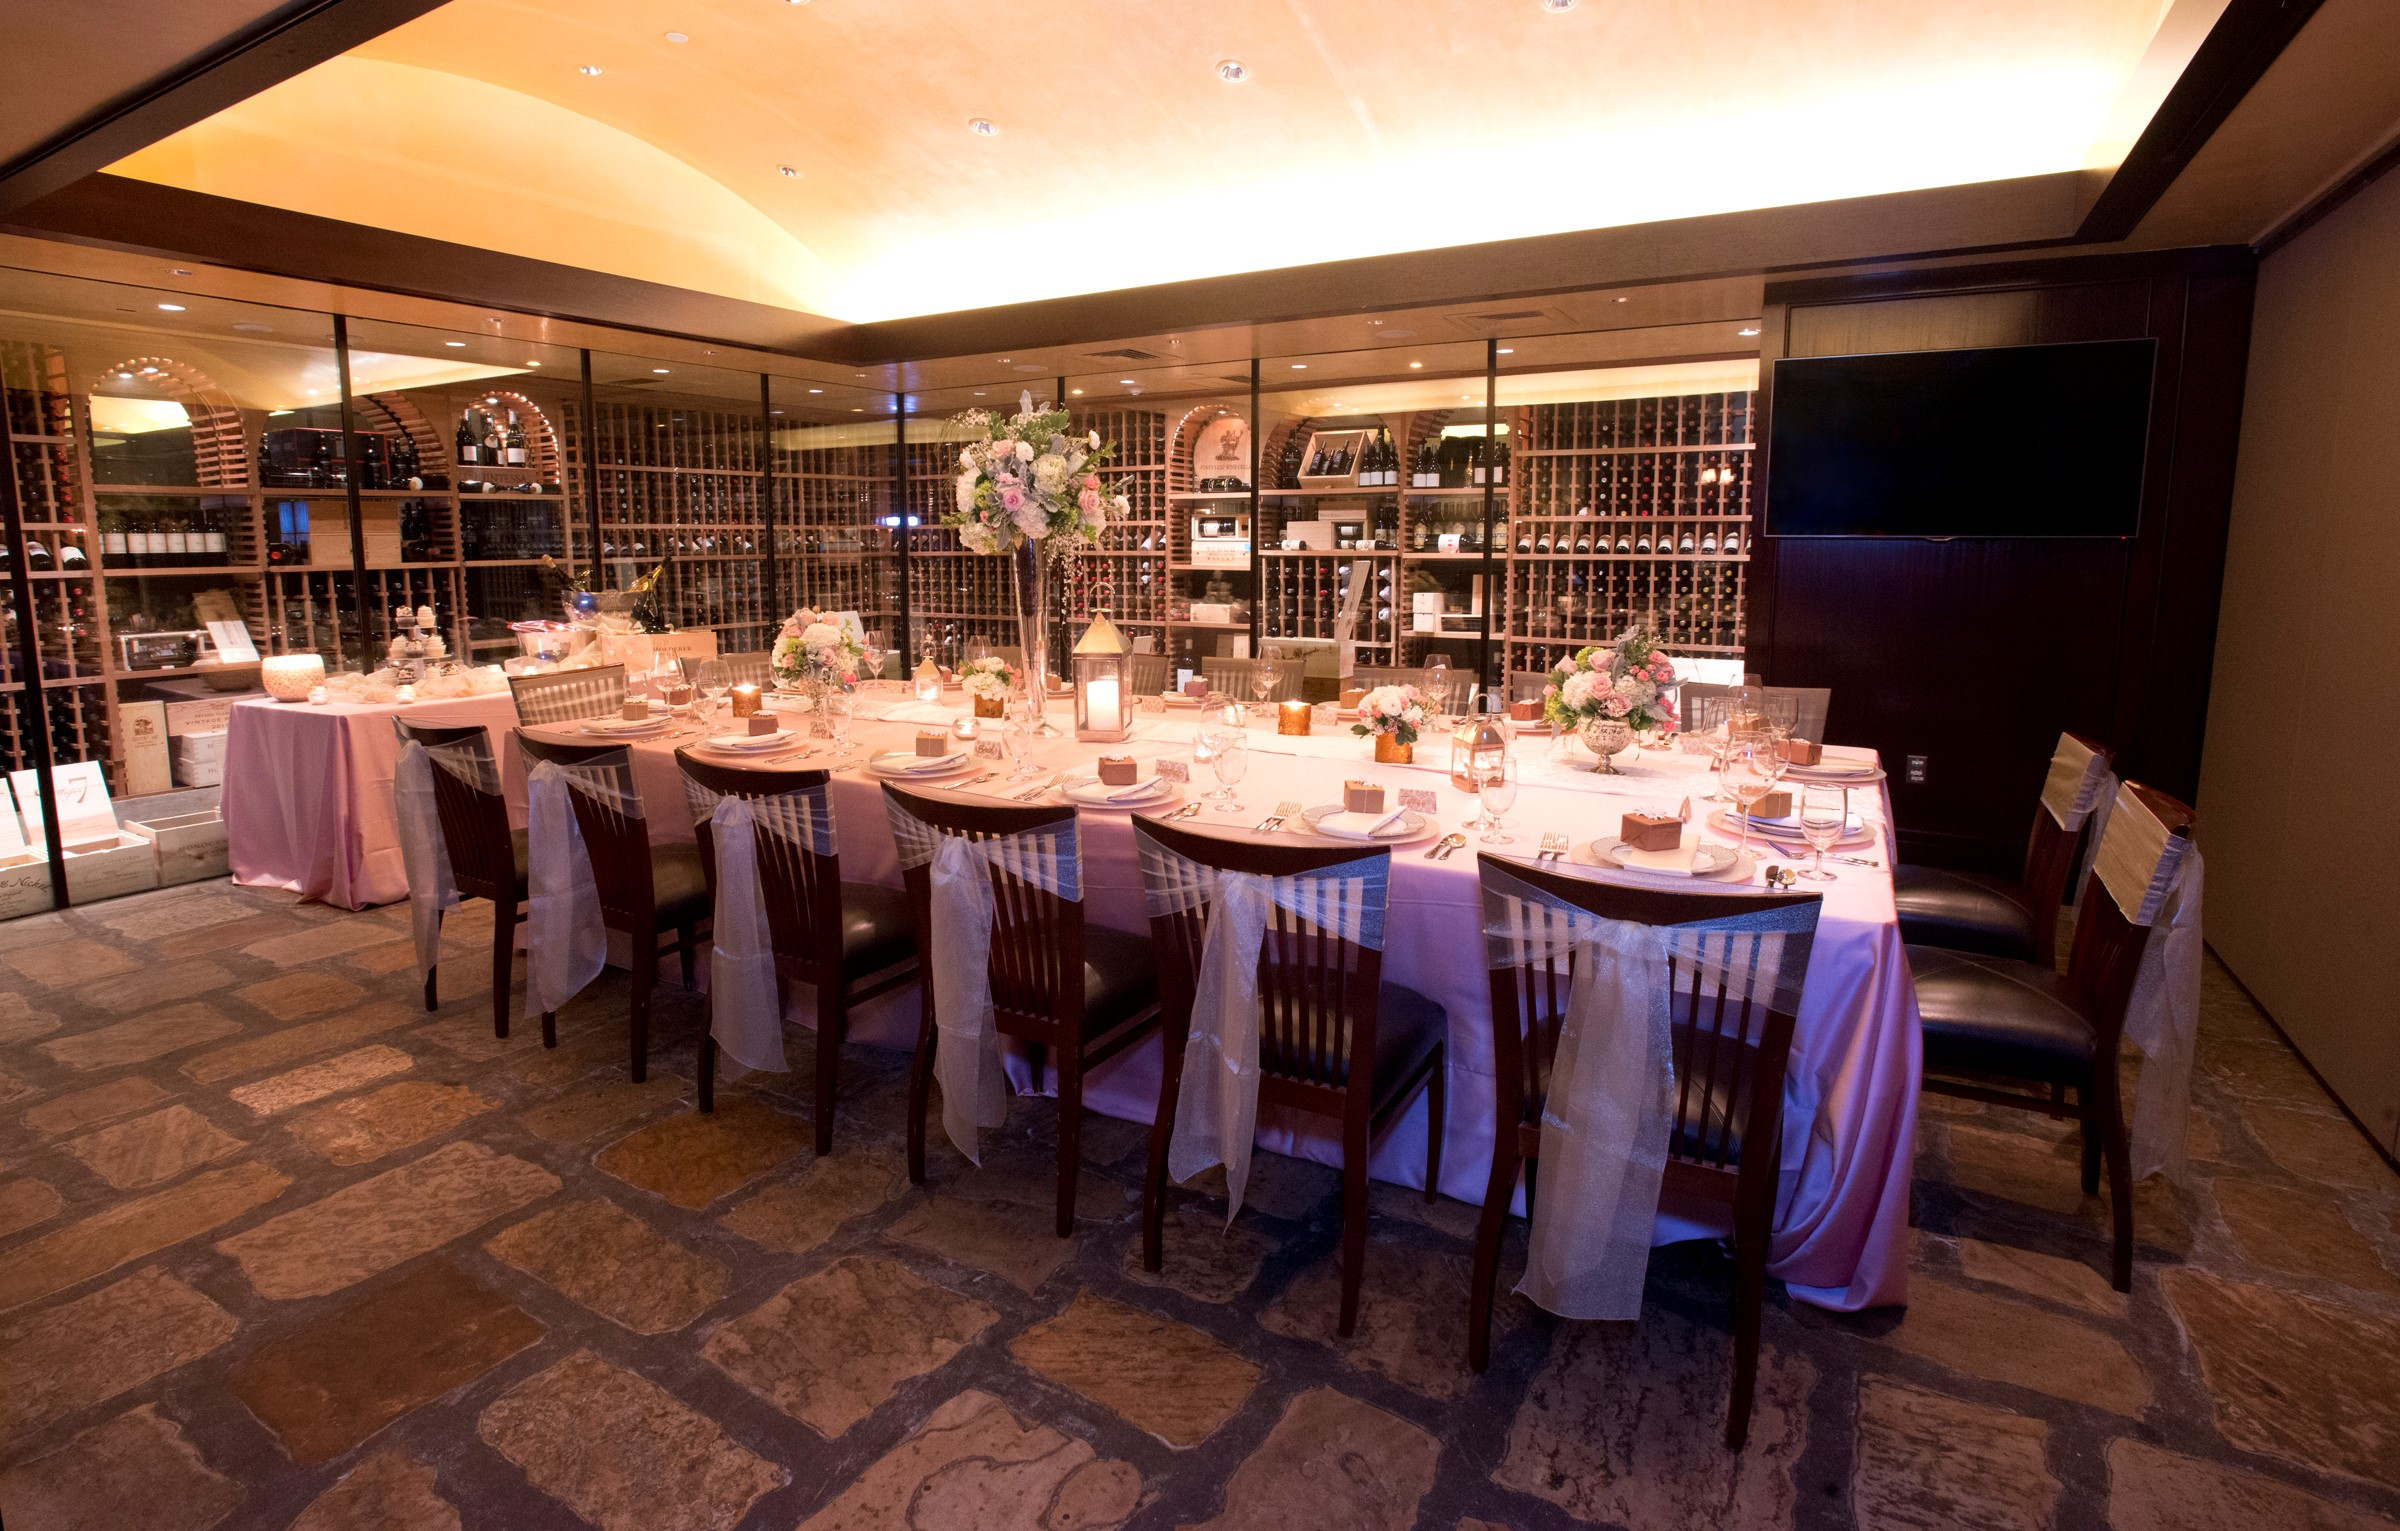 Del Frisco's Double Eagle Steakhouse Charlotte Cellar One private dining room